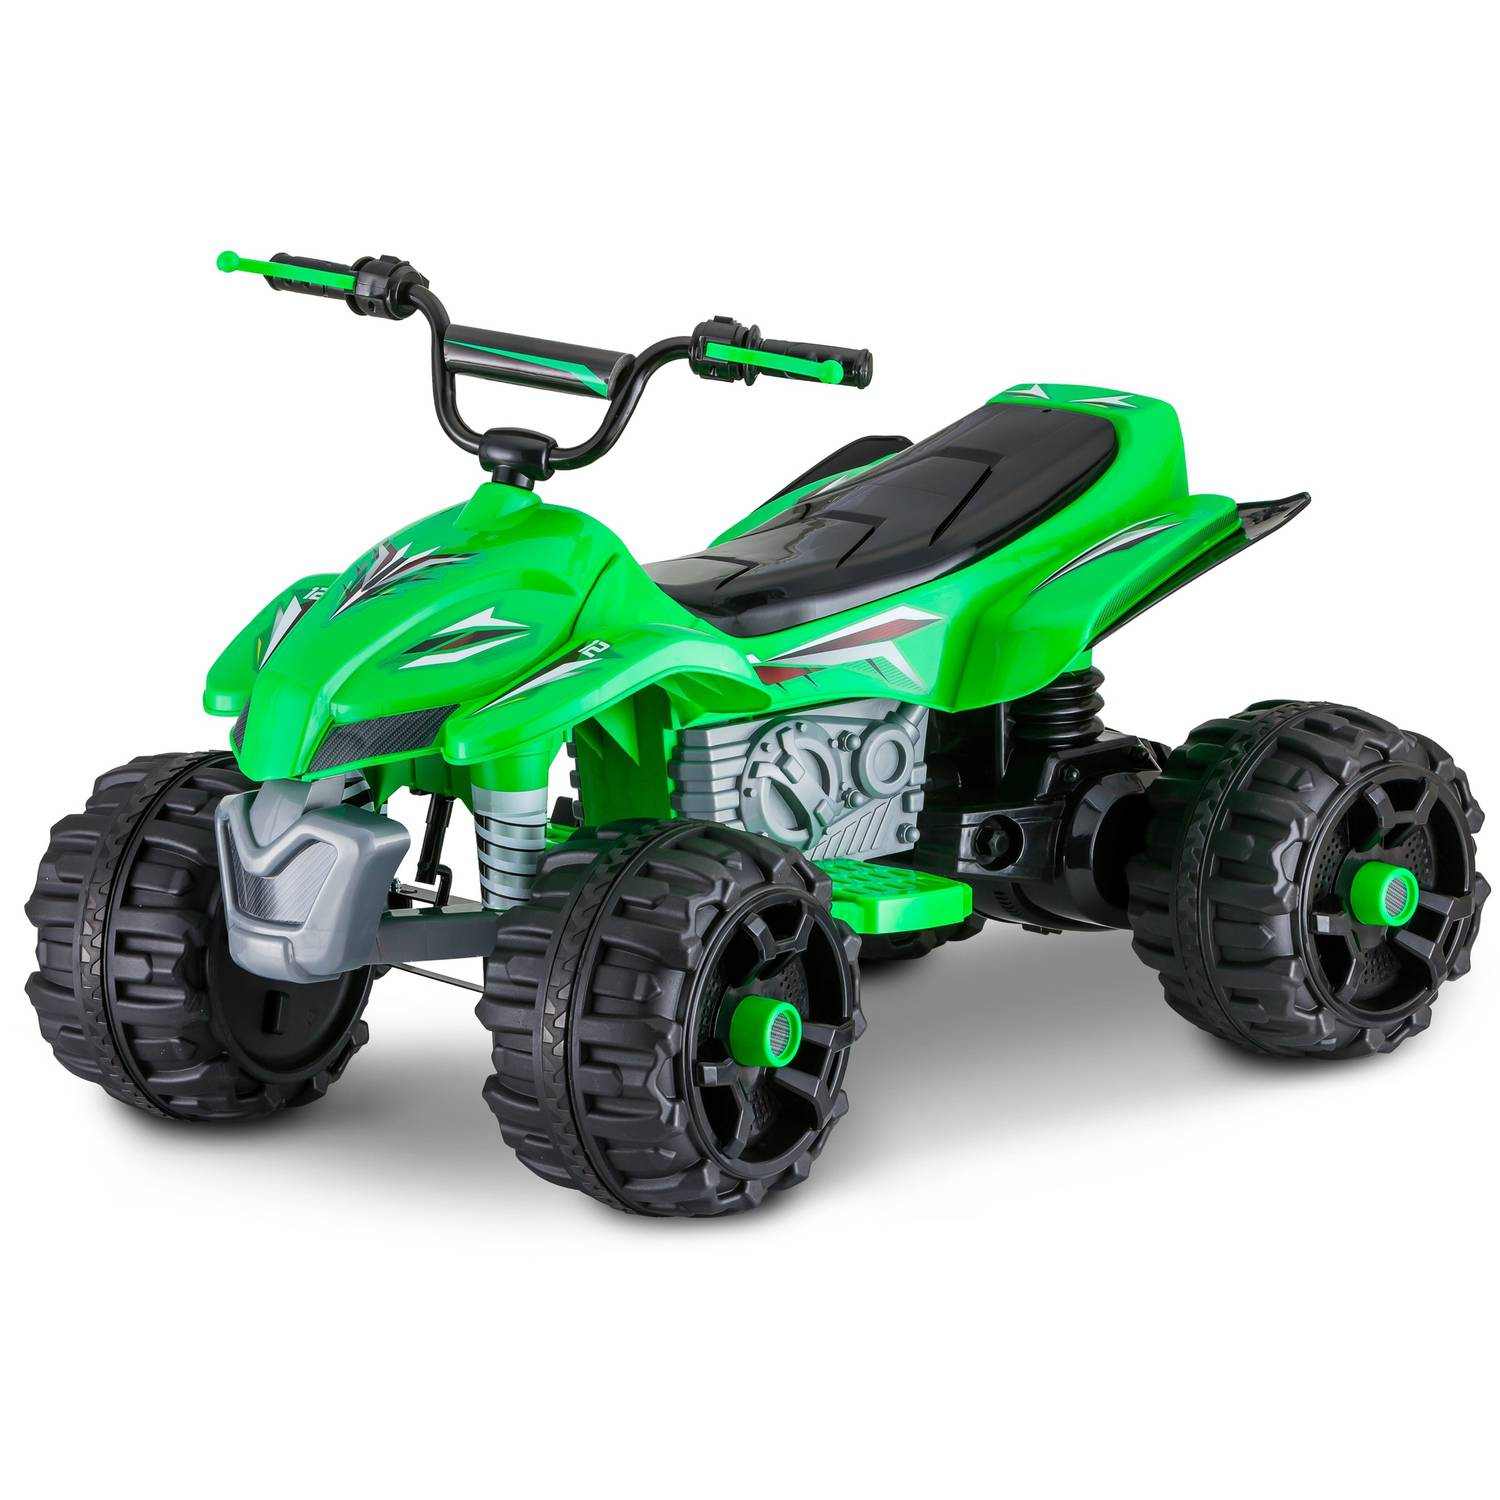 Sport ATV 12V Battery Powered Ride-On, Green